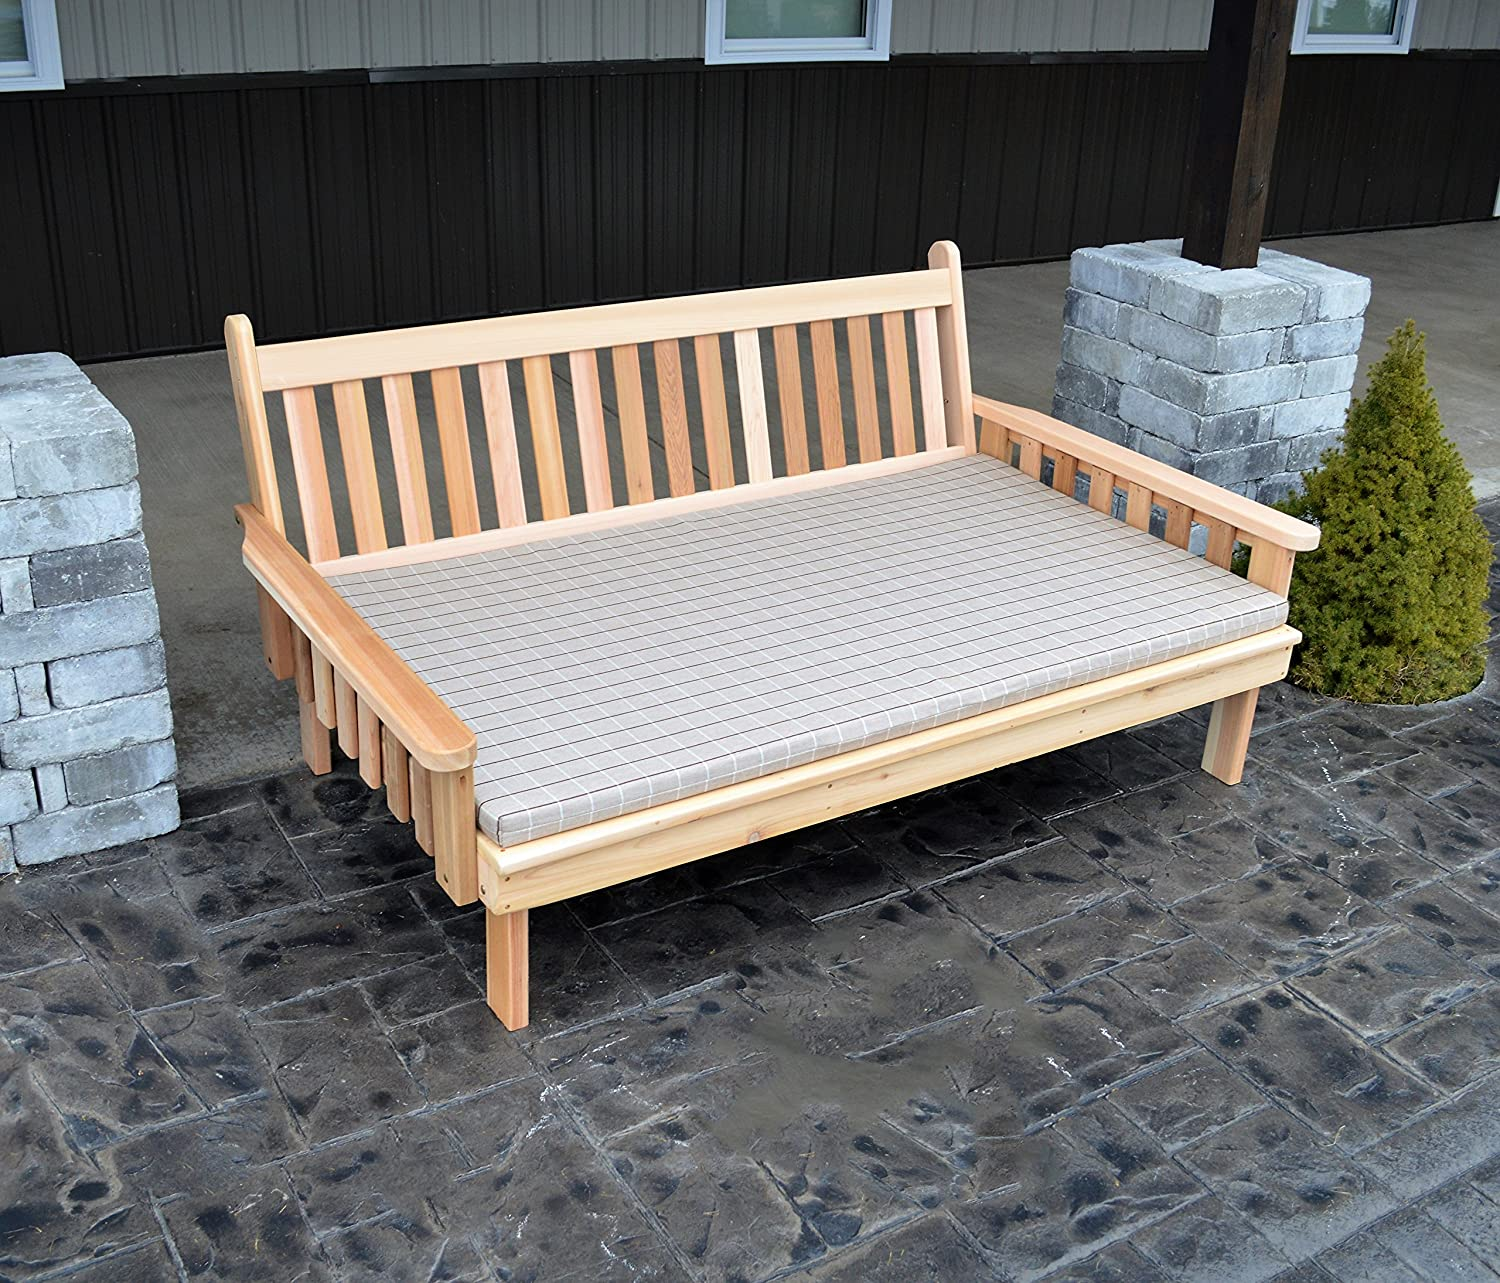 Amazon & Amazon.com : ASPEN TREE INTERIORS Best Outdoor DAYBED 6 ...